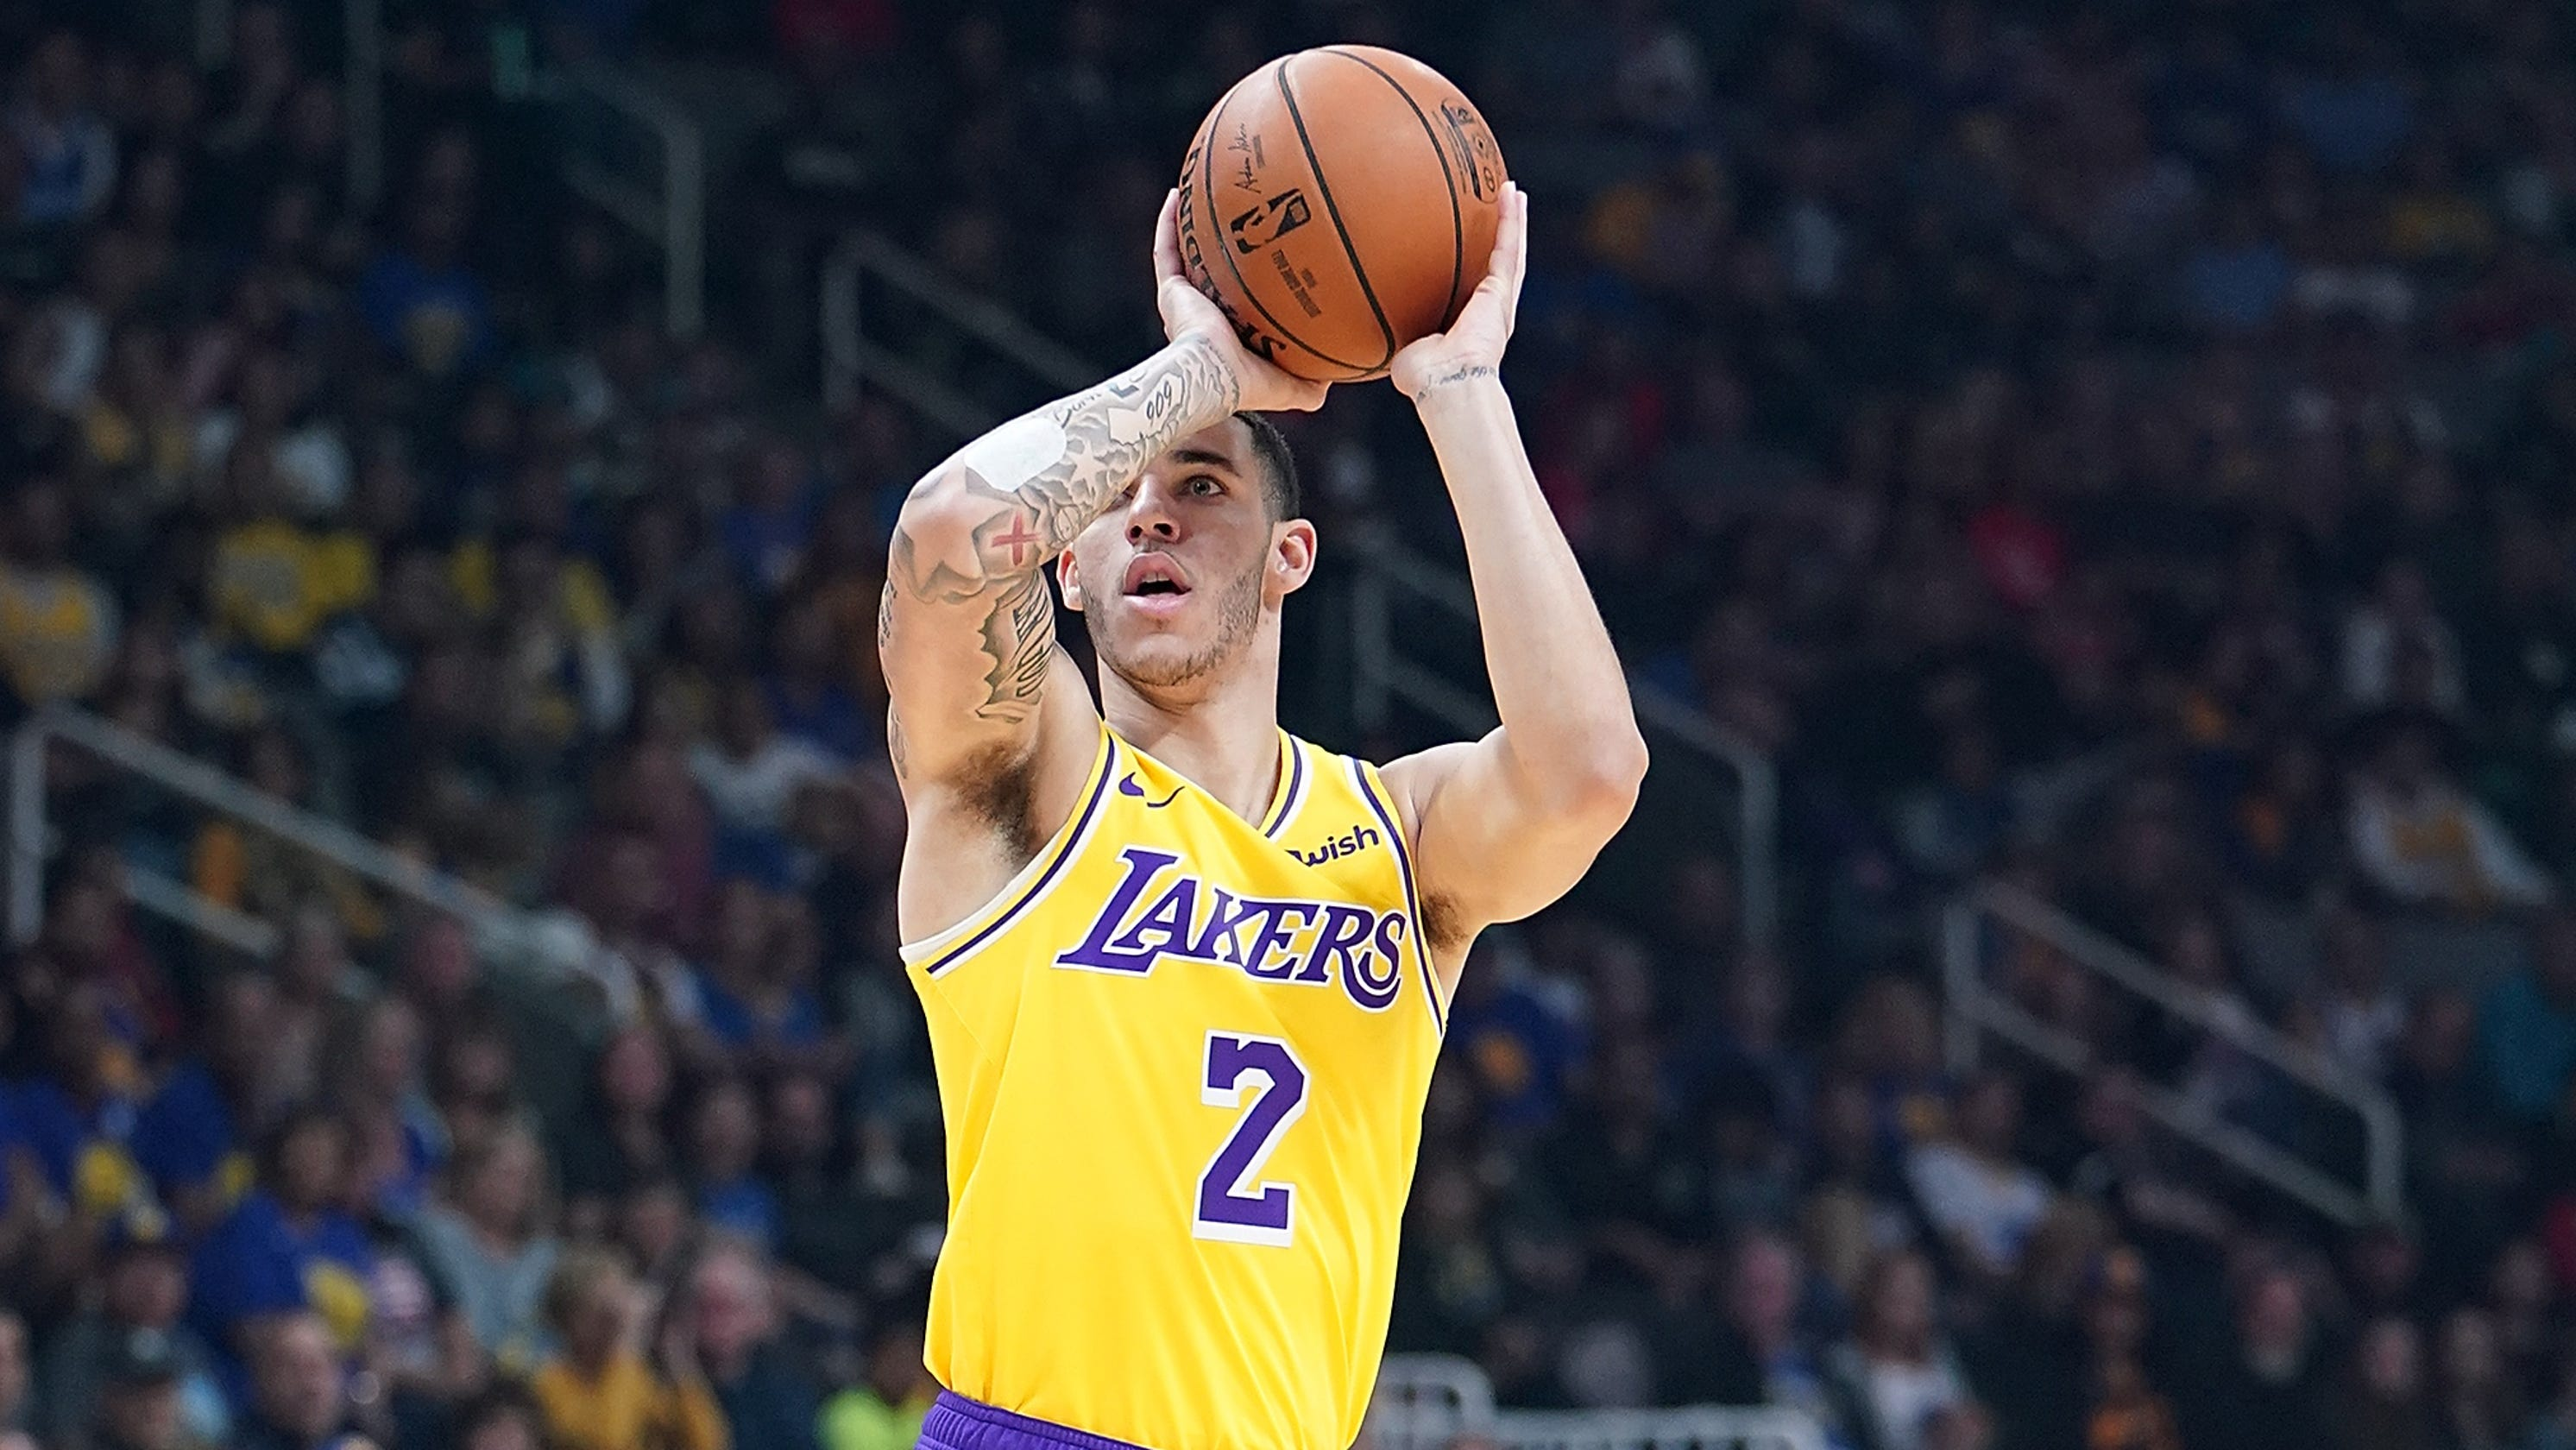 Jalen Rose says Lonzo Ball 'doesn't fit with' Los Angeles Lakers' dynamic